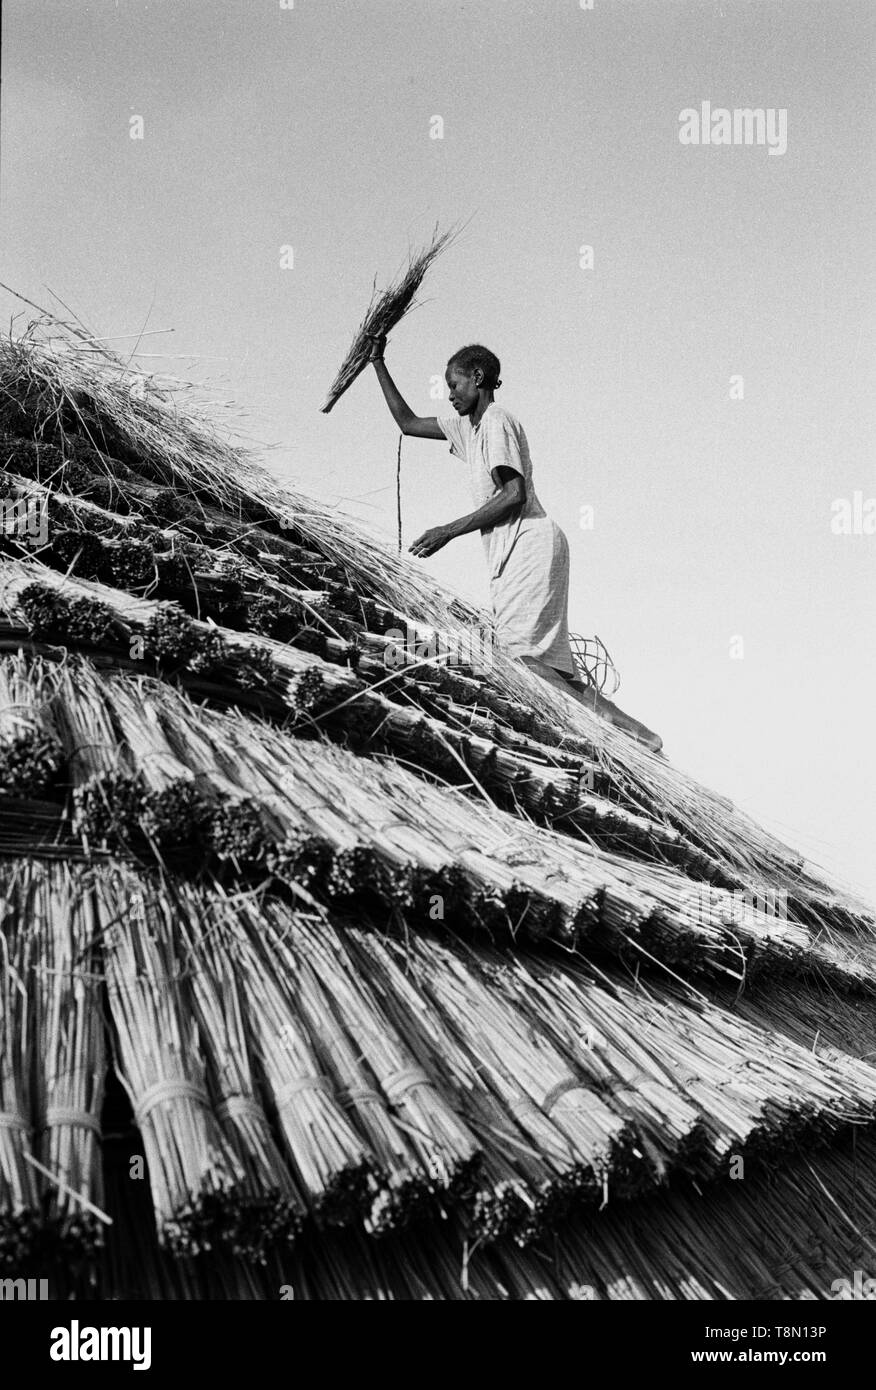 roof thatching are done by women, the rings of ridges are custom to the Dinka Tribe. - Stock Image